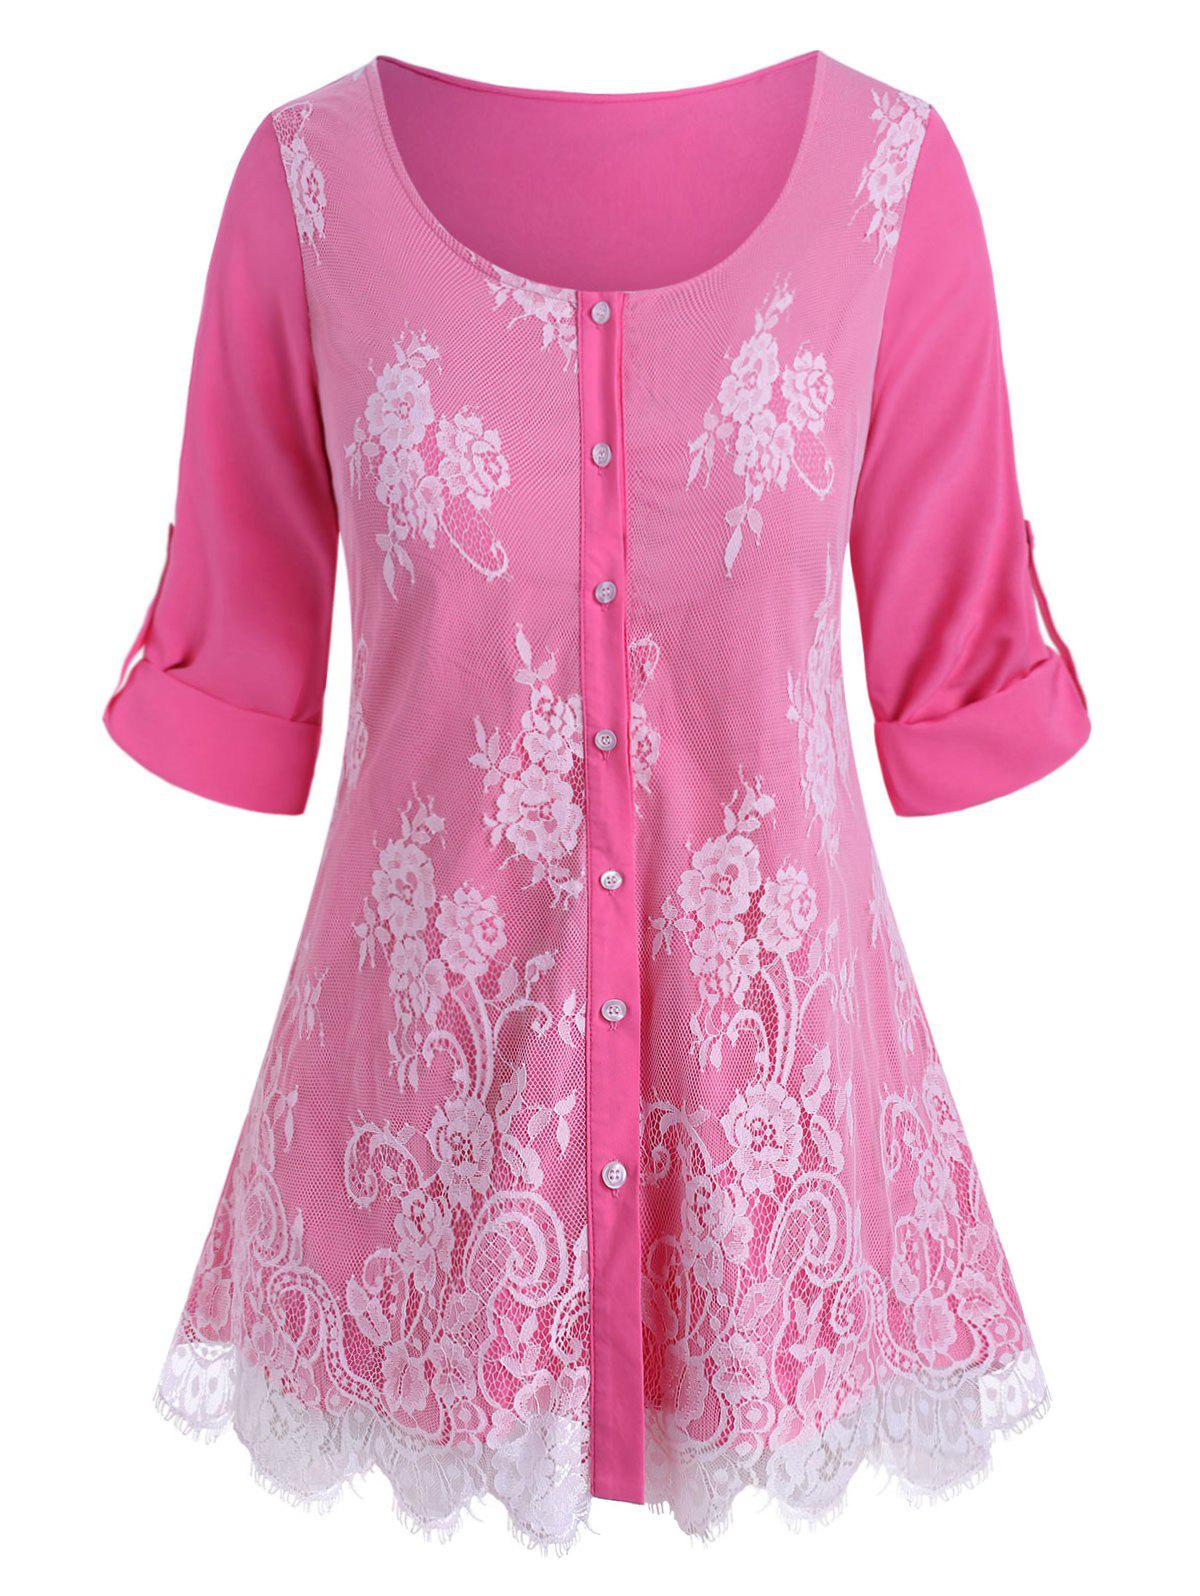 Plus Size Roll Up Sleeve Lace Overlay Blouse - LIGHT PINK 5X